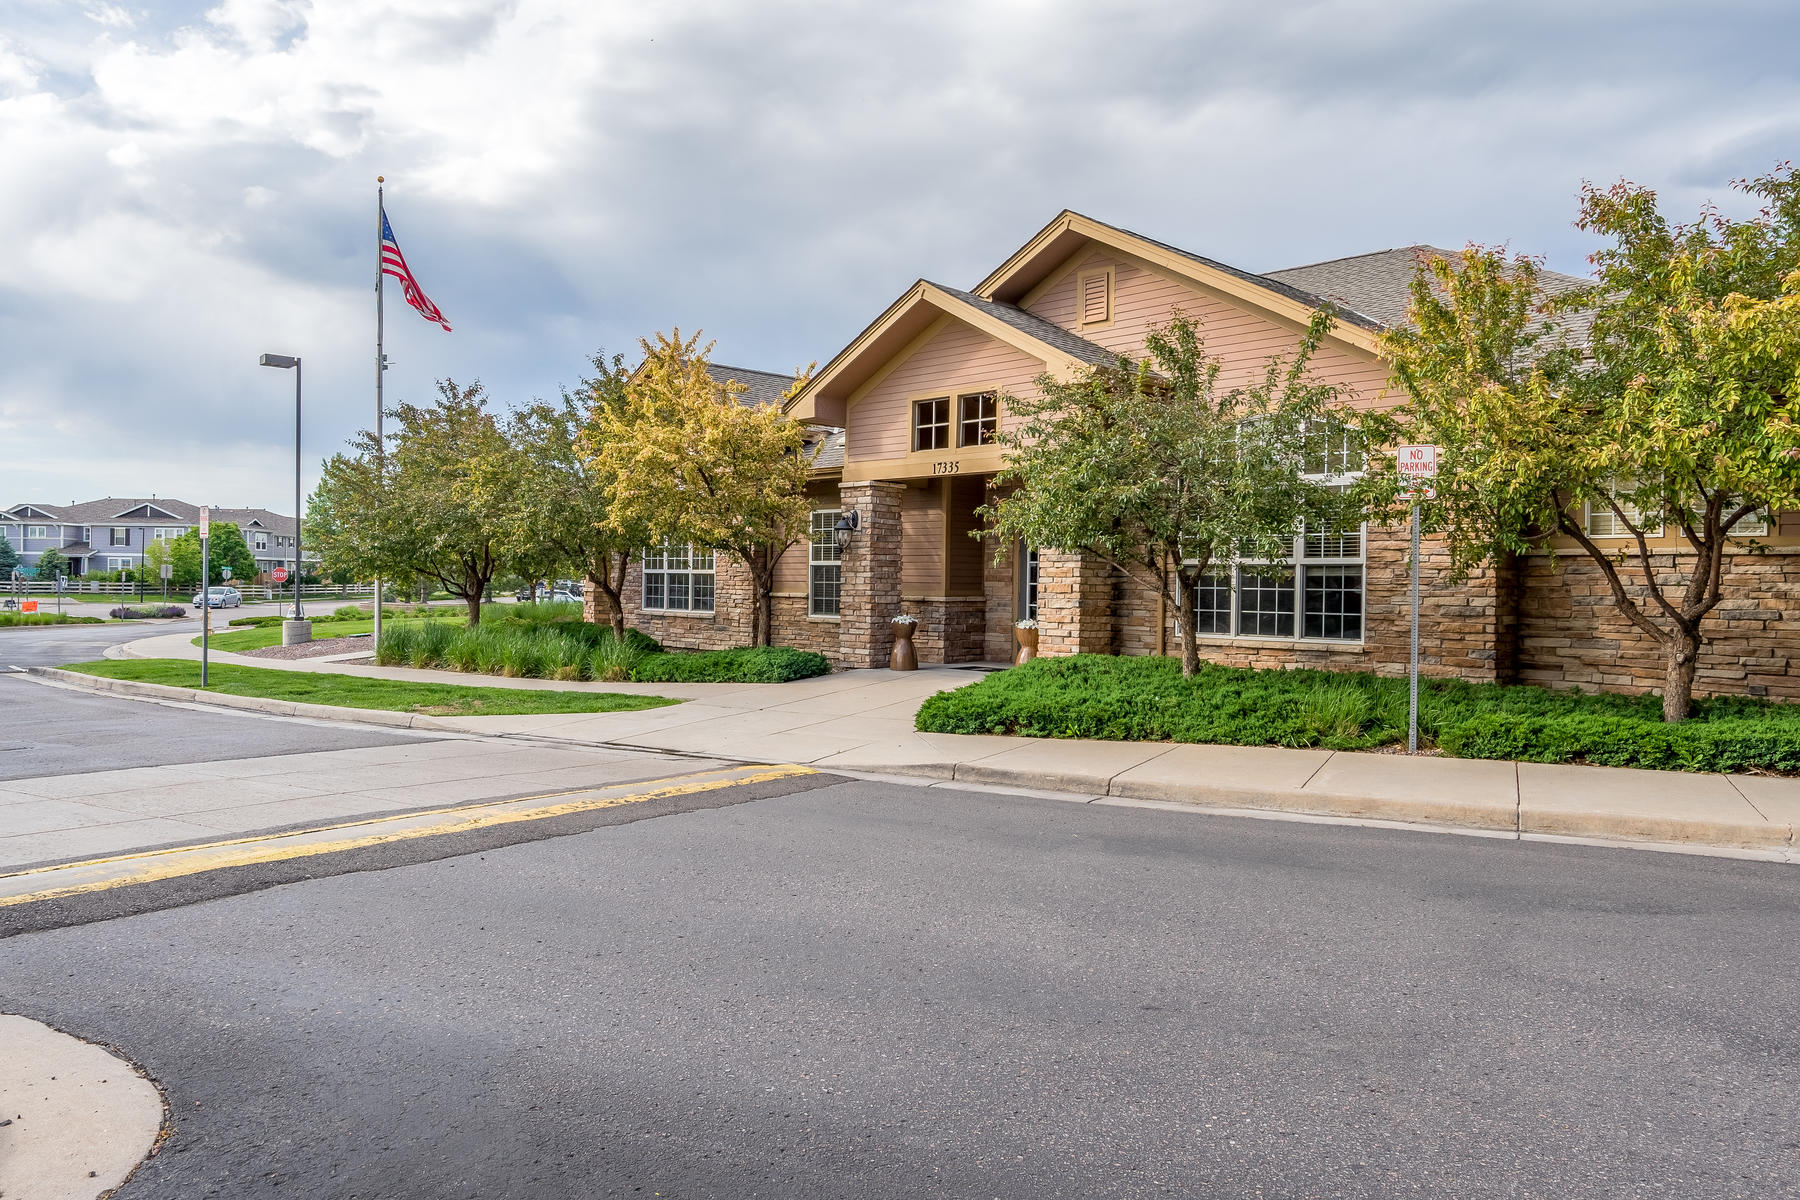 Additional photo for property listing at New construction Condos in an established community in Parker. 17353 Wilde Ln #302 C, Bldg 6 Parker, Colorado 80134 United States